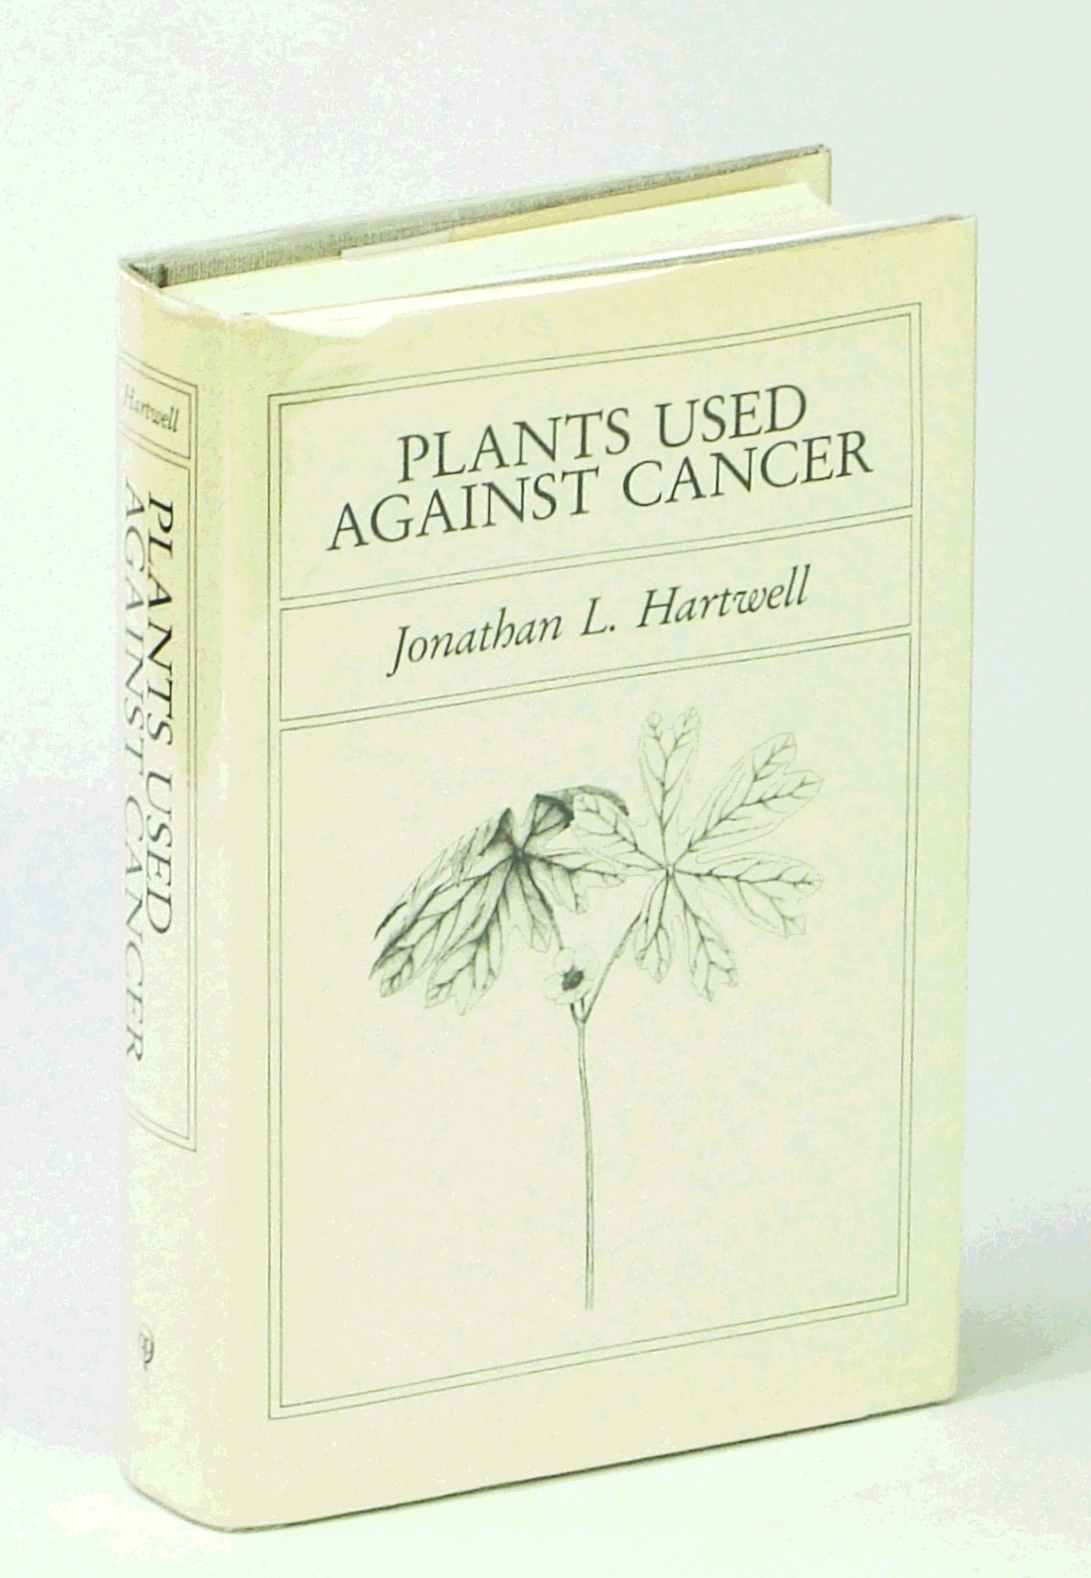 Image for Plants Used Against Cancer: A Survey (Bioactive Plants, Vol II)